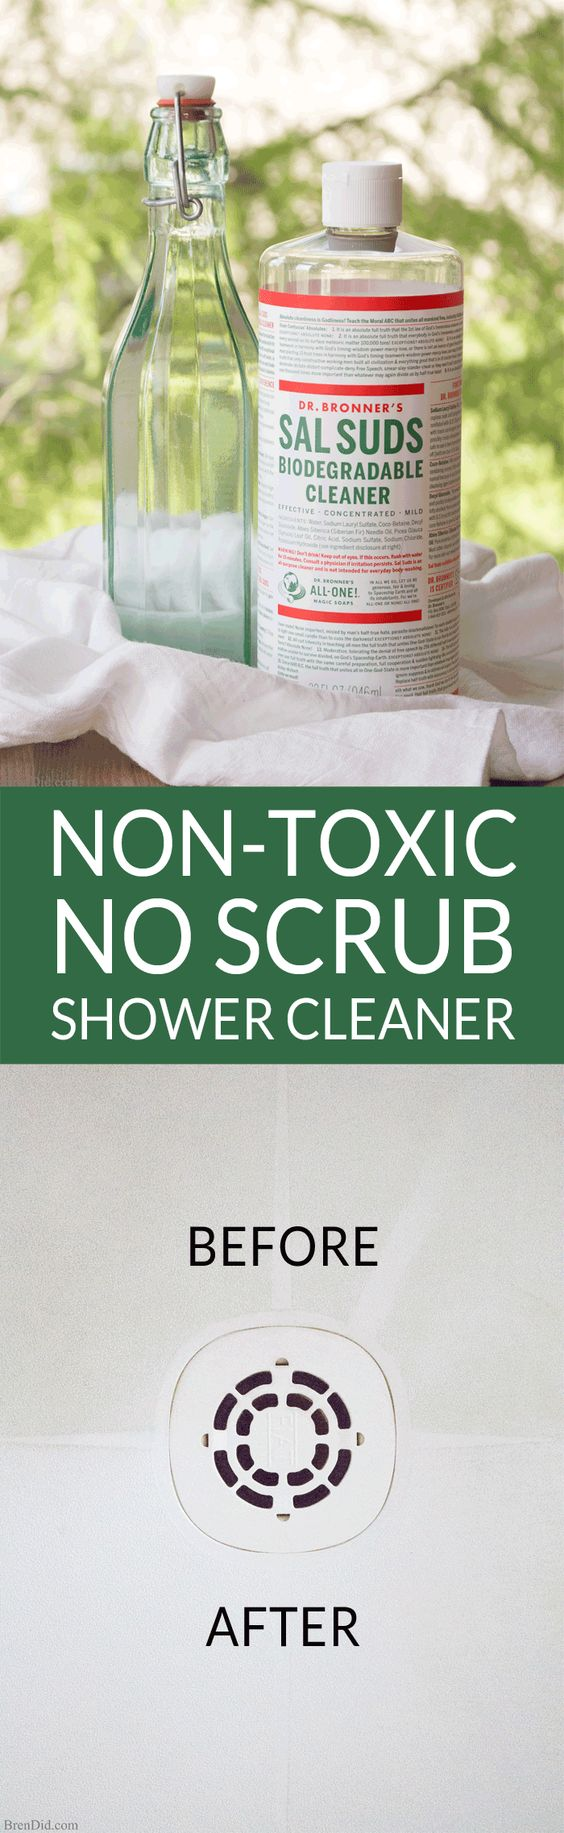 non toxic no scrub shower cleaner clean shower shower cleaner and homemade